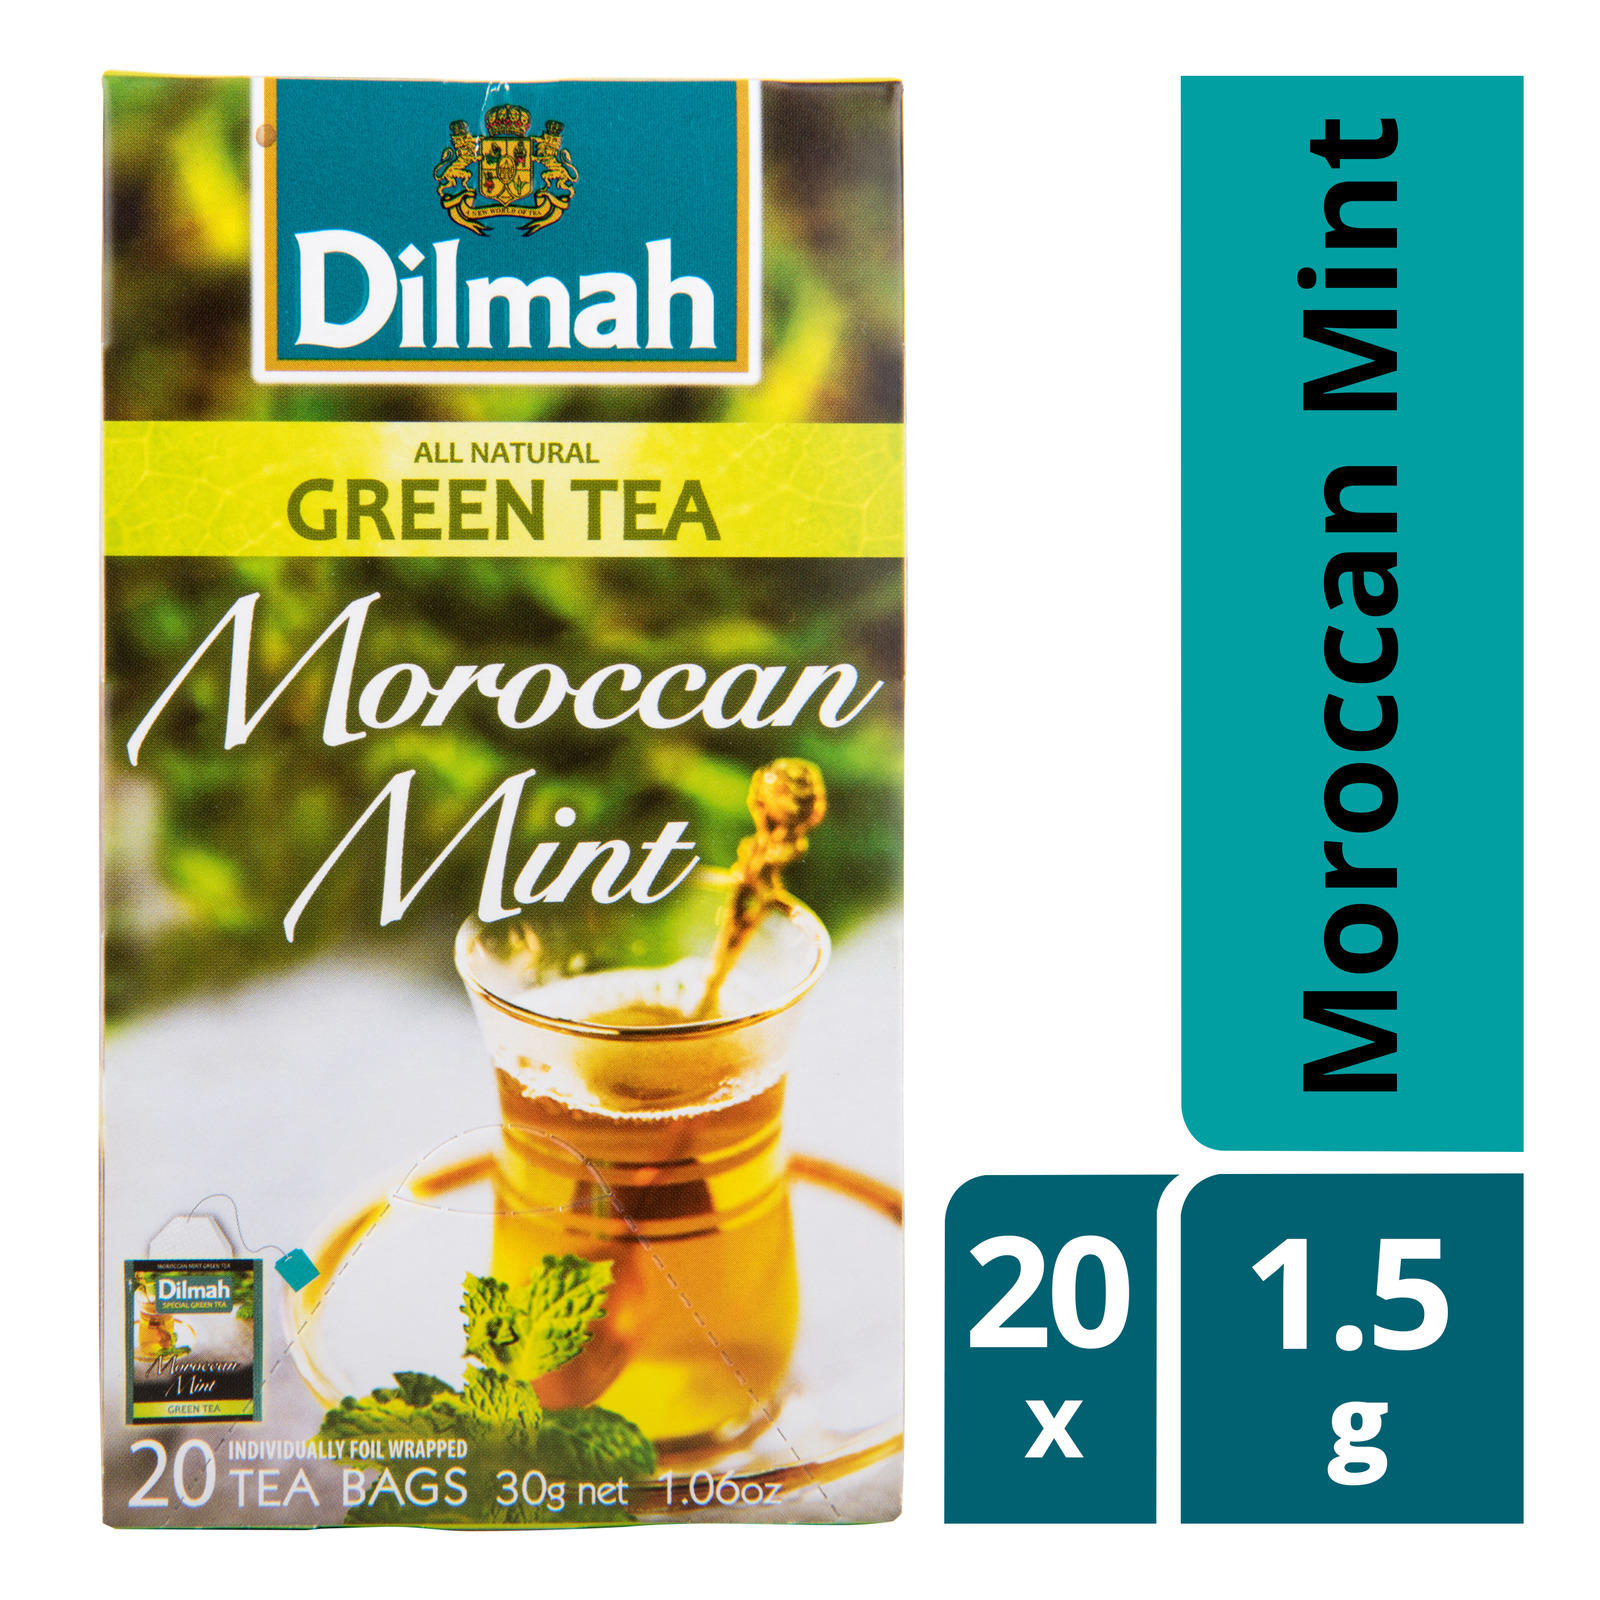 Dilmah Pure Ceylon Tea Bags - Moroccan Mint (Green Tea)